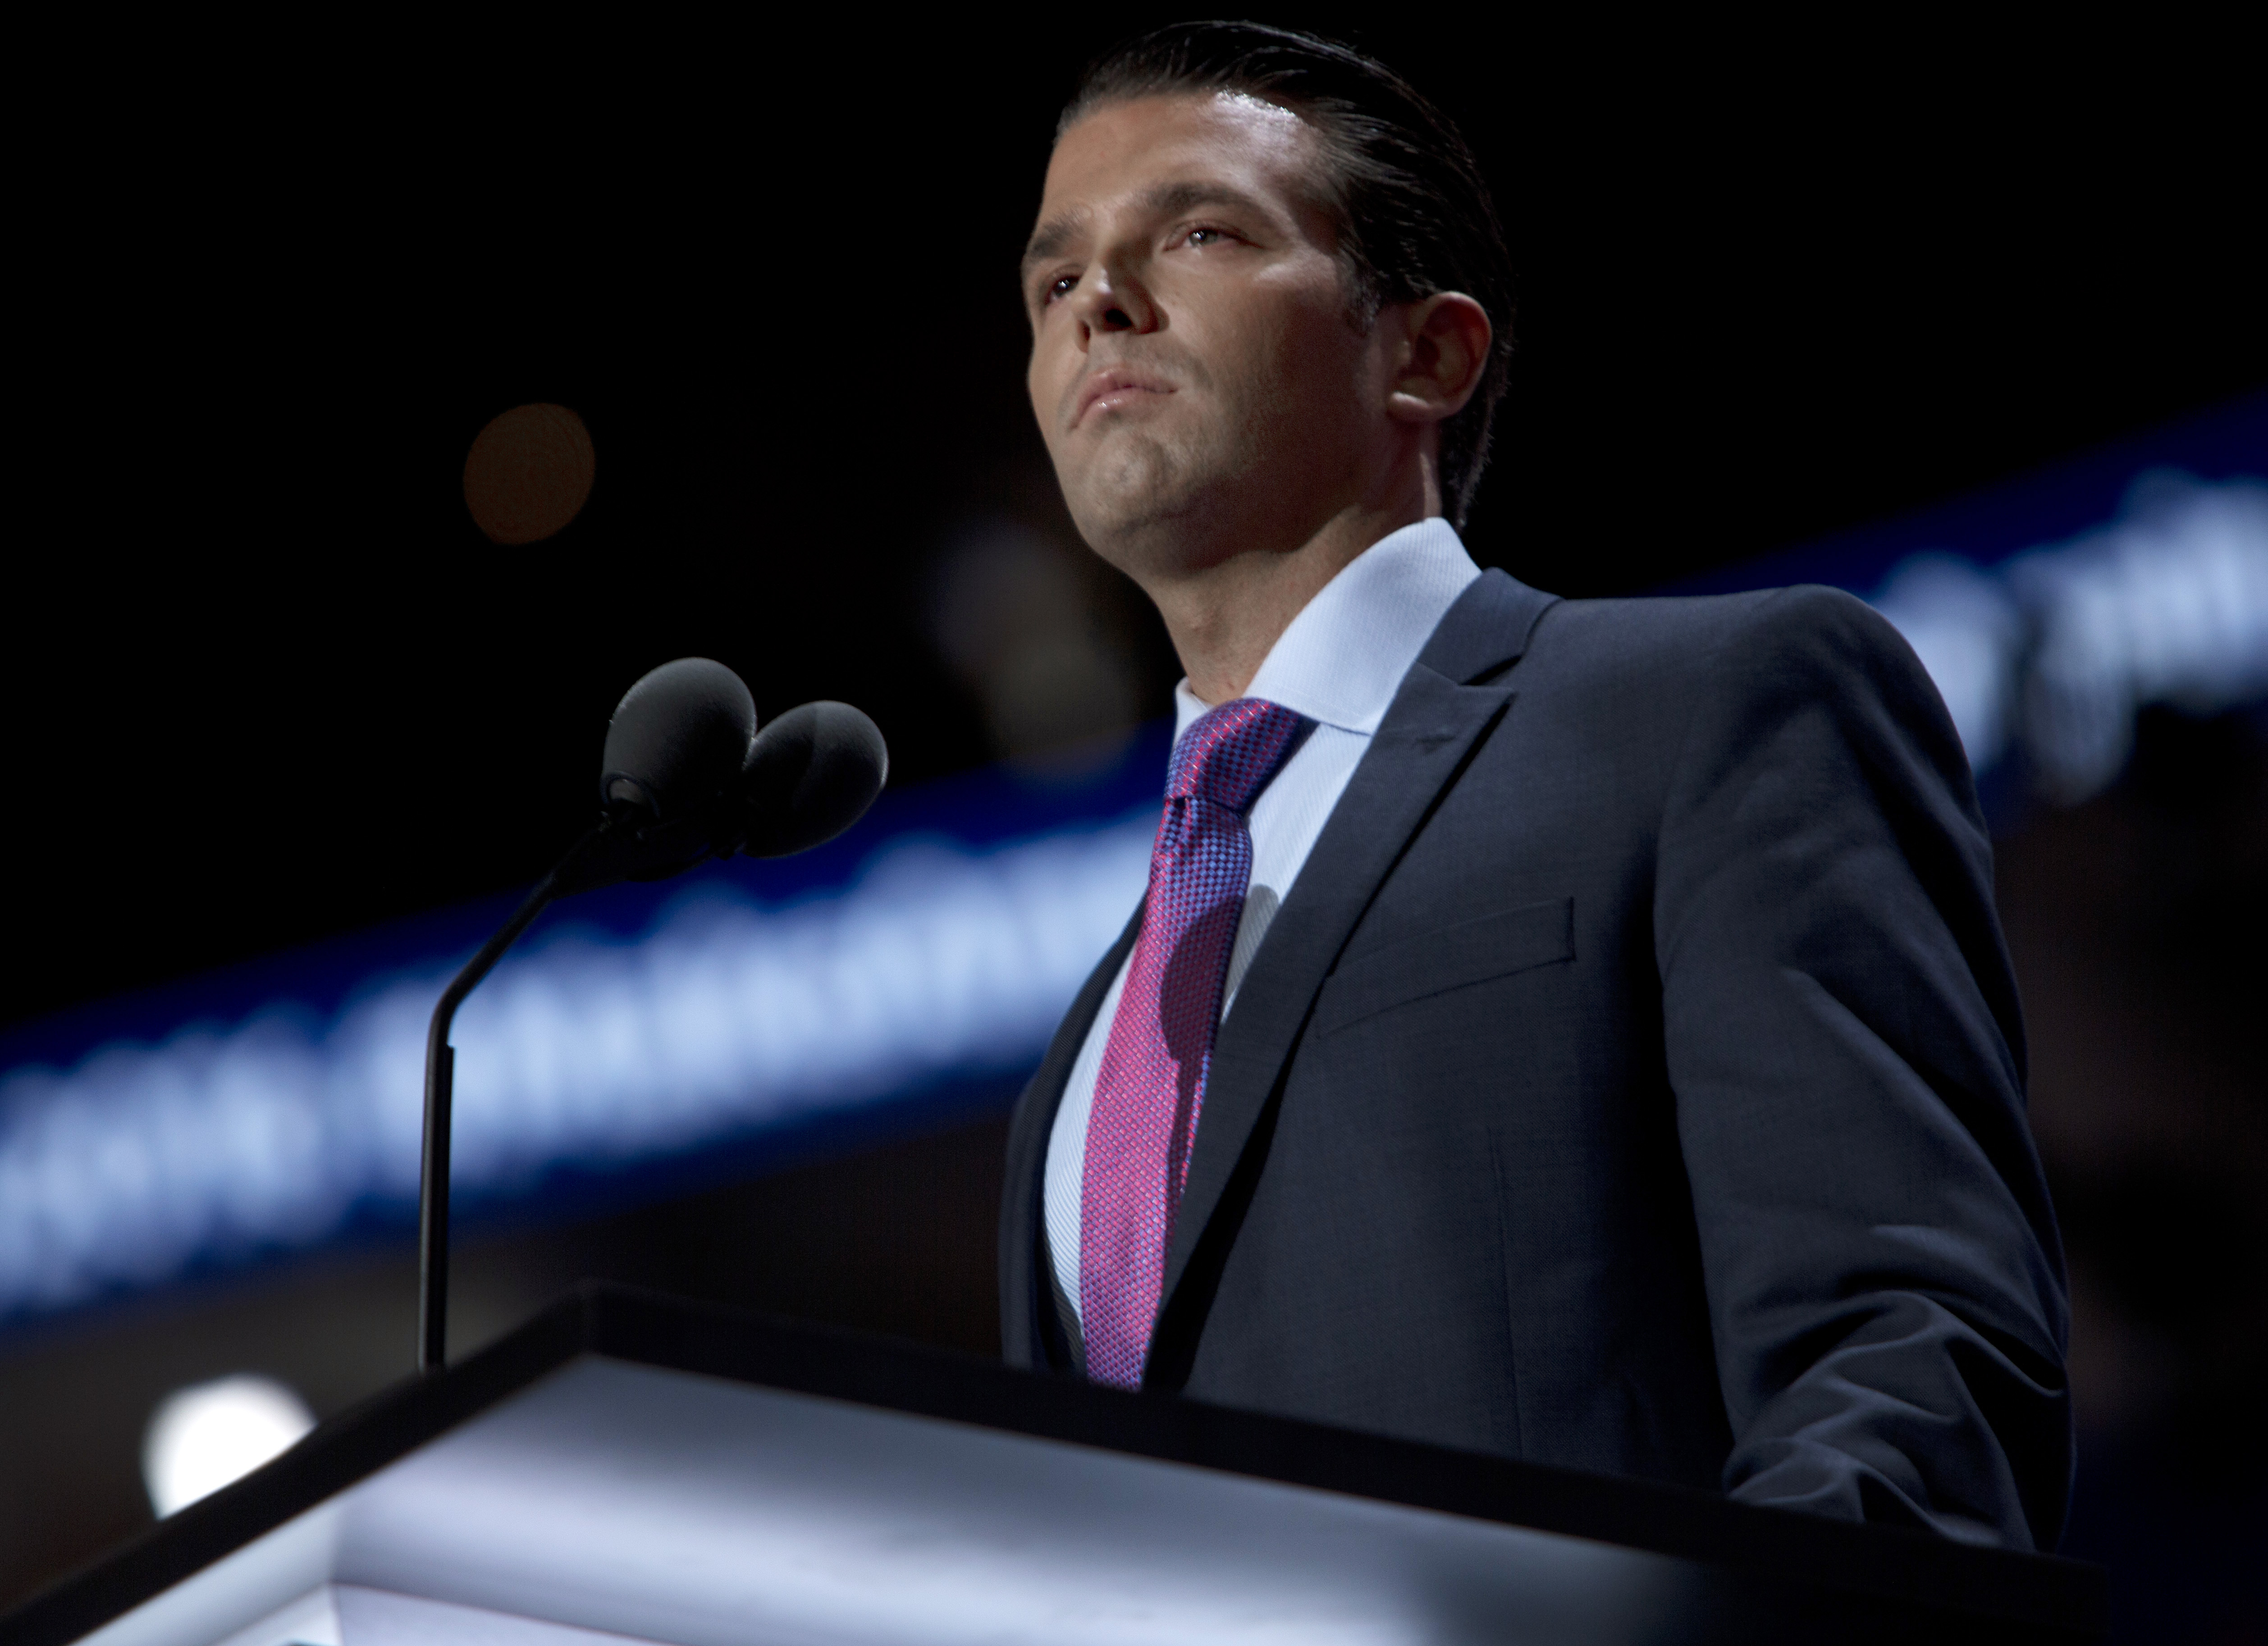 Donald Trump Jr. speaks at the Republican National Convention in Cleveland on July 19, 2016.